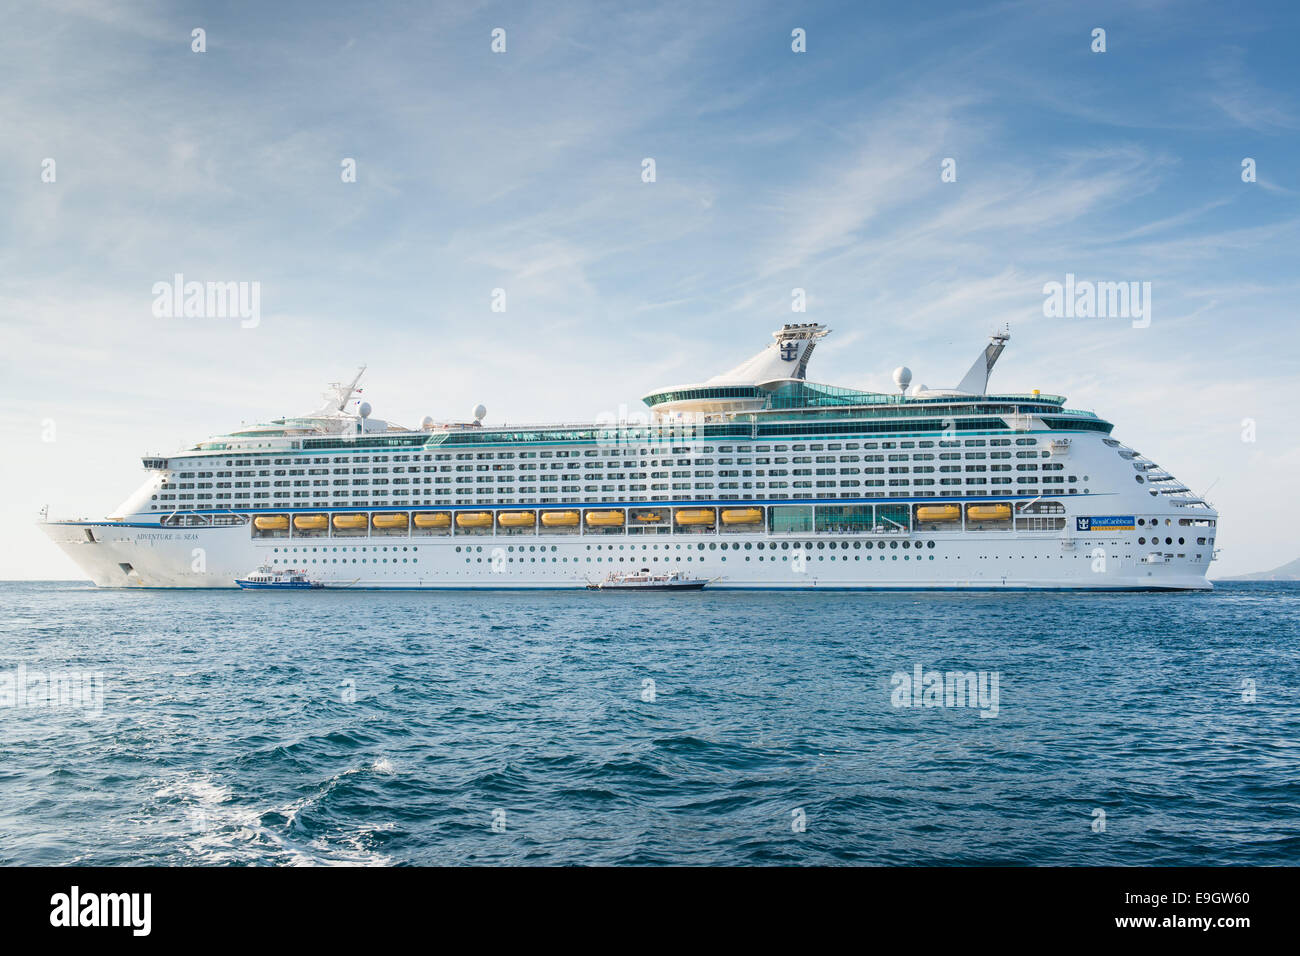 Royal Caribbean International cruise ship Adventure Of The Seas off the coast of Cannes, France - Stock Image